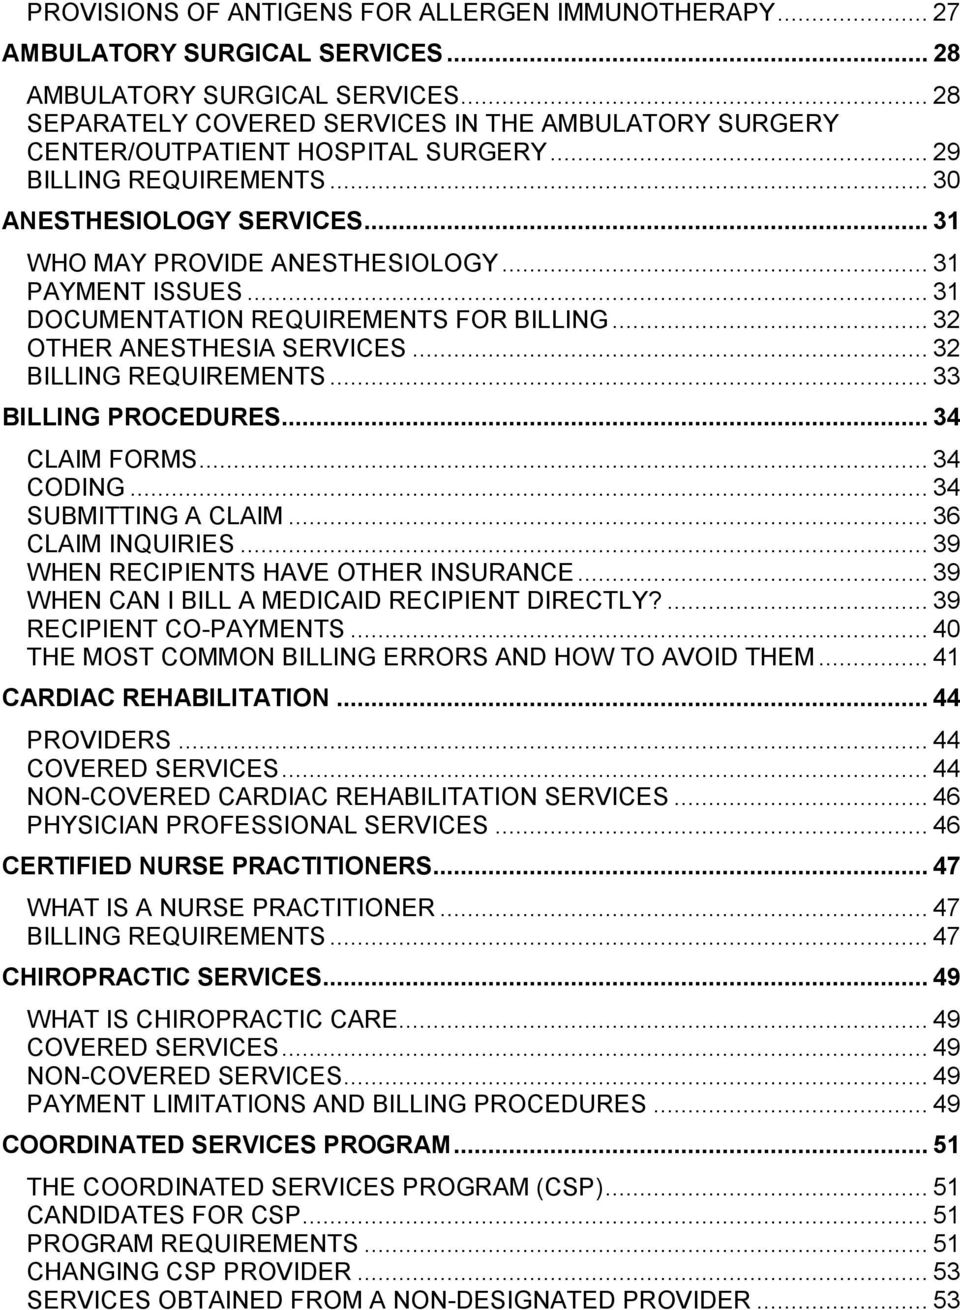 .. 31 PAYMENT ISSUES... 31 DOCUMENTATION REQUIREMENTS FOR BILLING... 32 OTHER ANESTHESIA SERVICES... 32 BILLING REQUIREMENTS... 33 BILLING PROCEDURES... 34 CLAIM FORMS... 34 CODING.